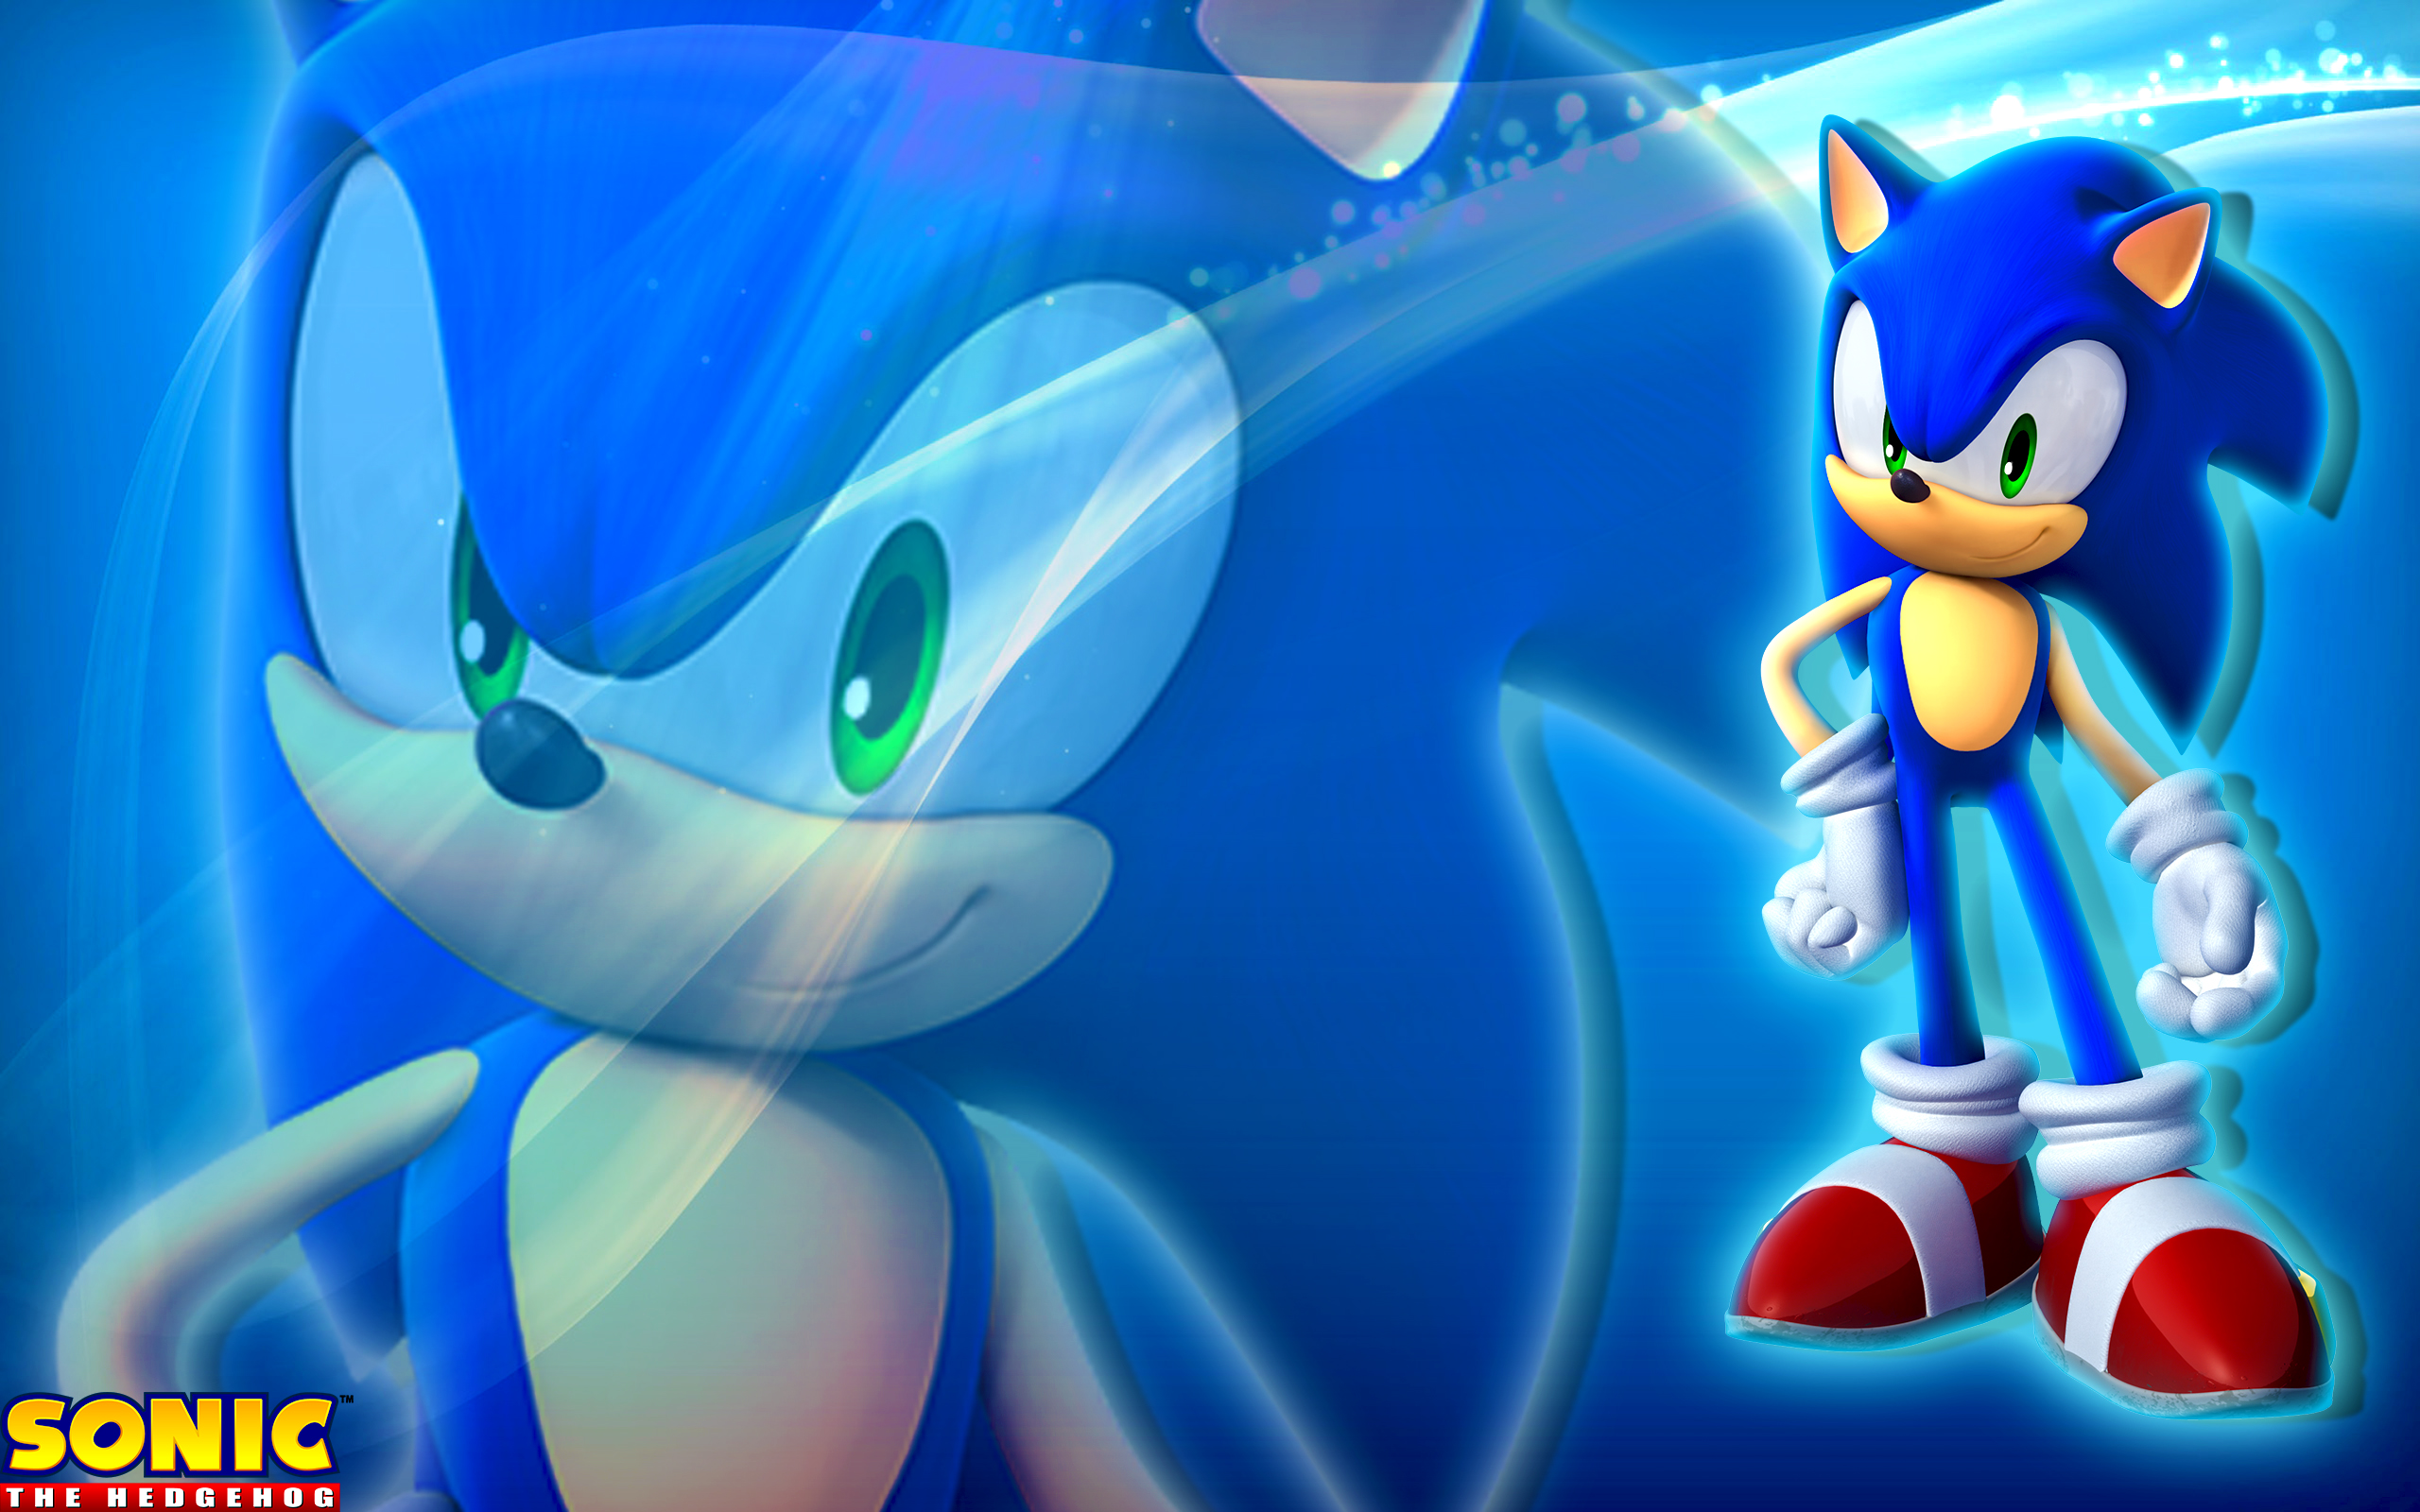 Sonic The Hedgehog Wallpaper By SonicTheHedgehogBG